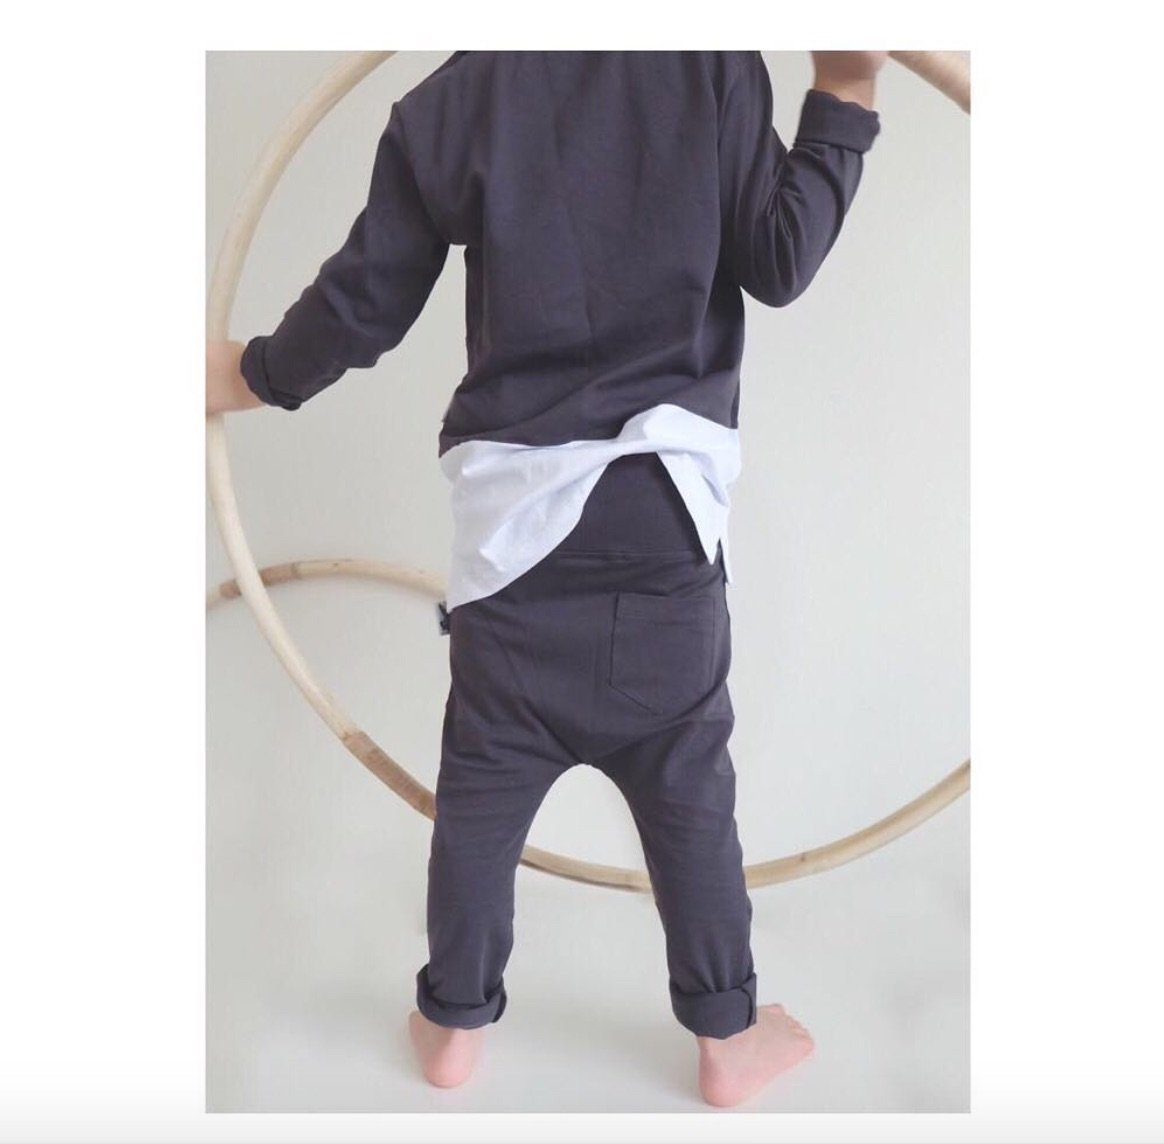 9b3e20b48 25 European Kids Clothing Brands That Will Have You Saying